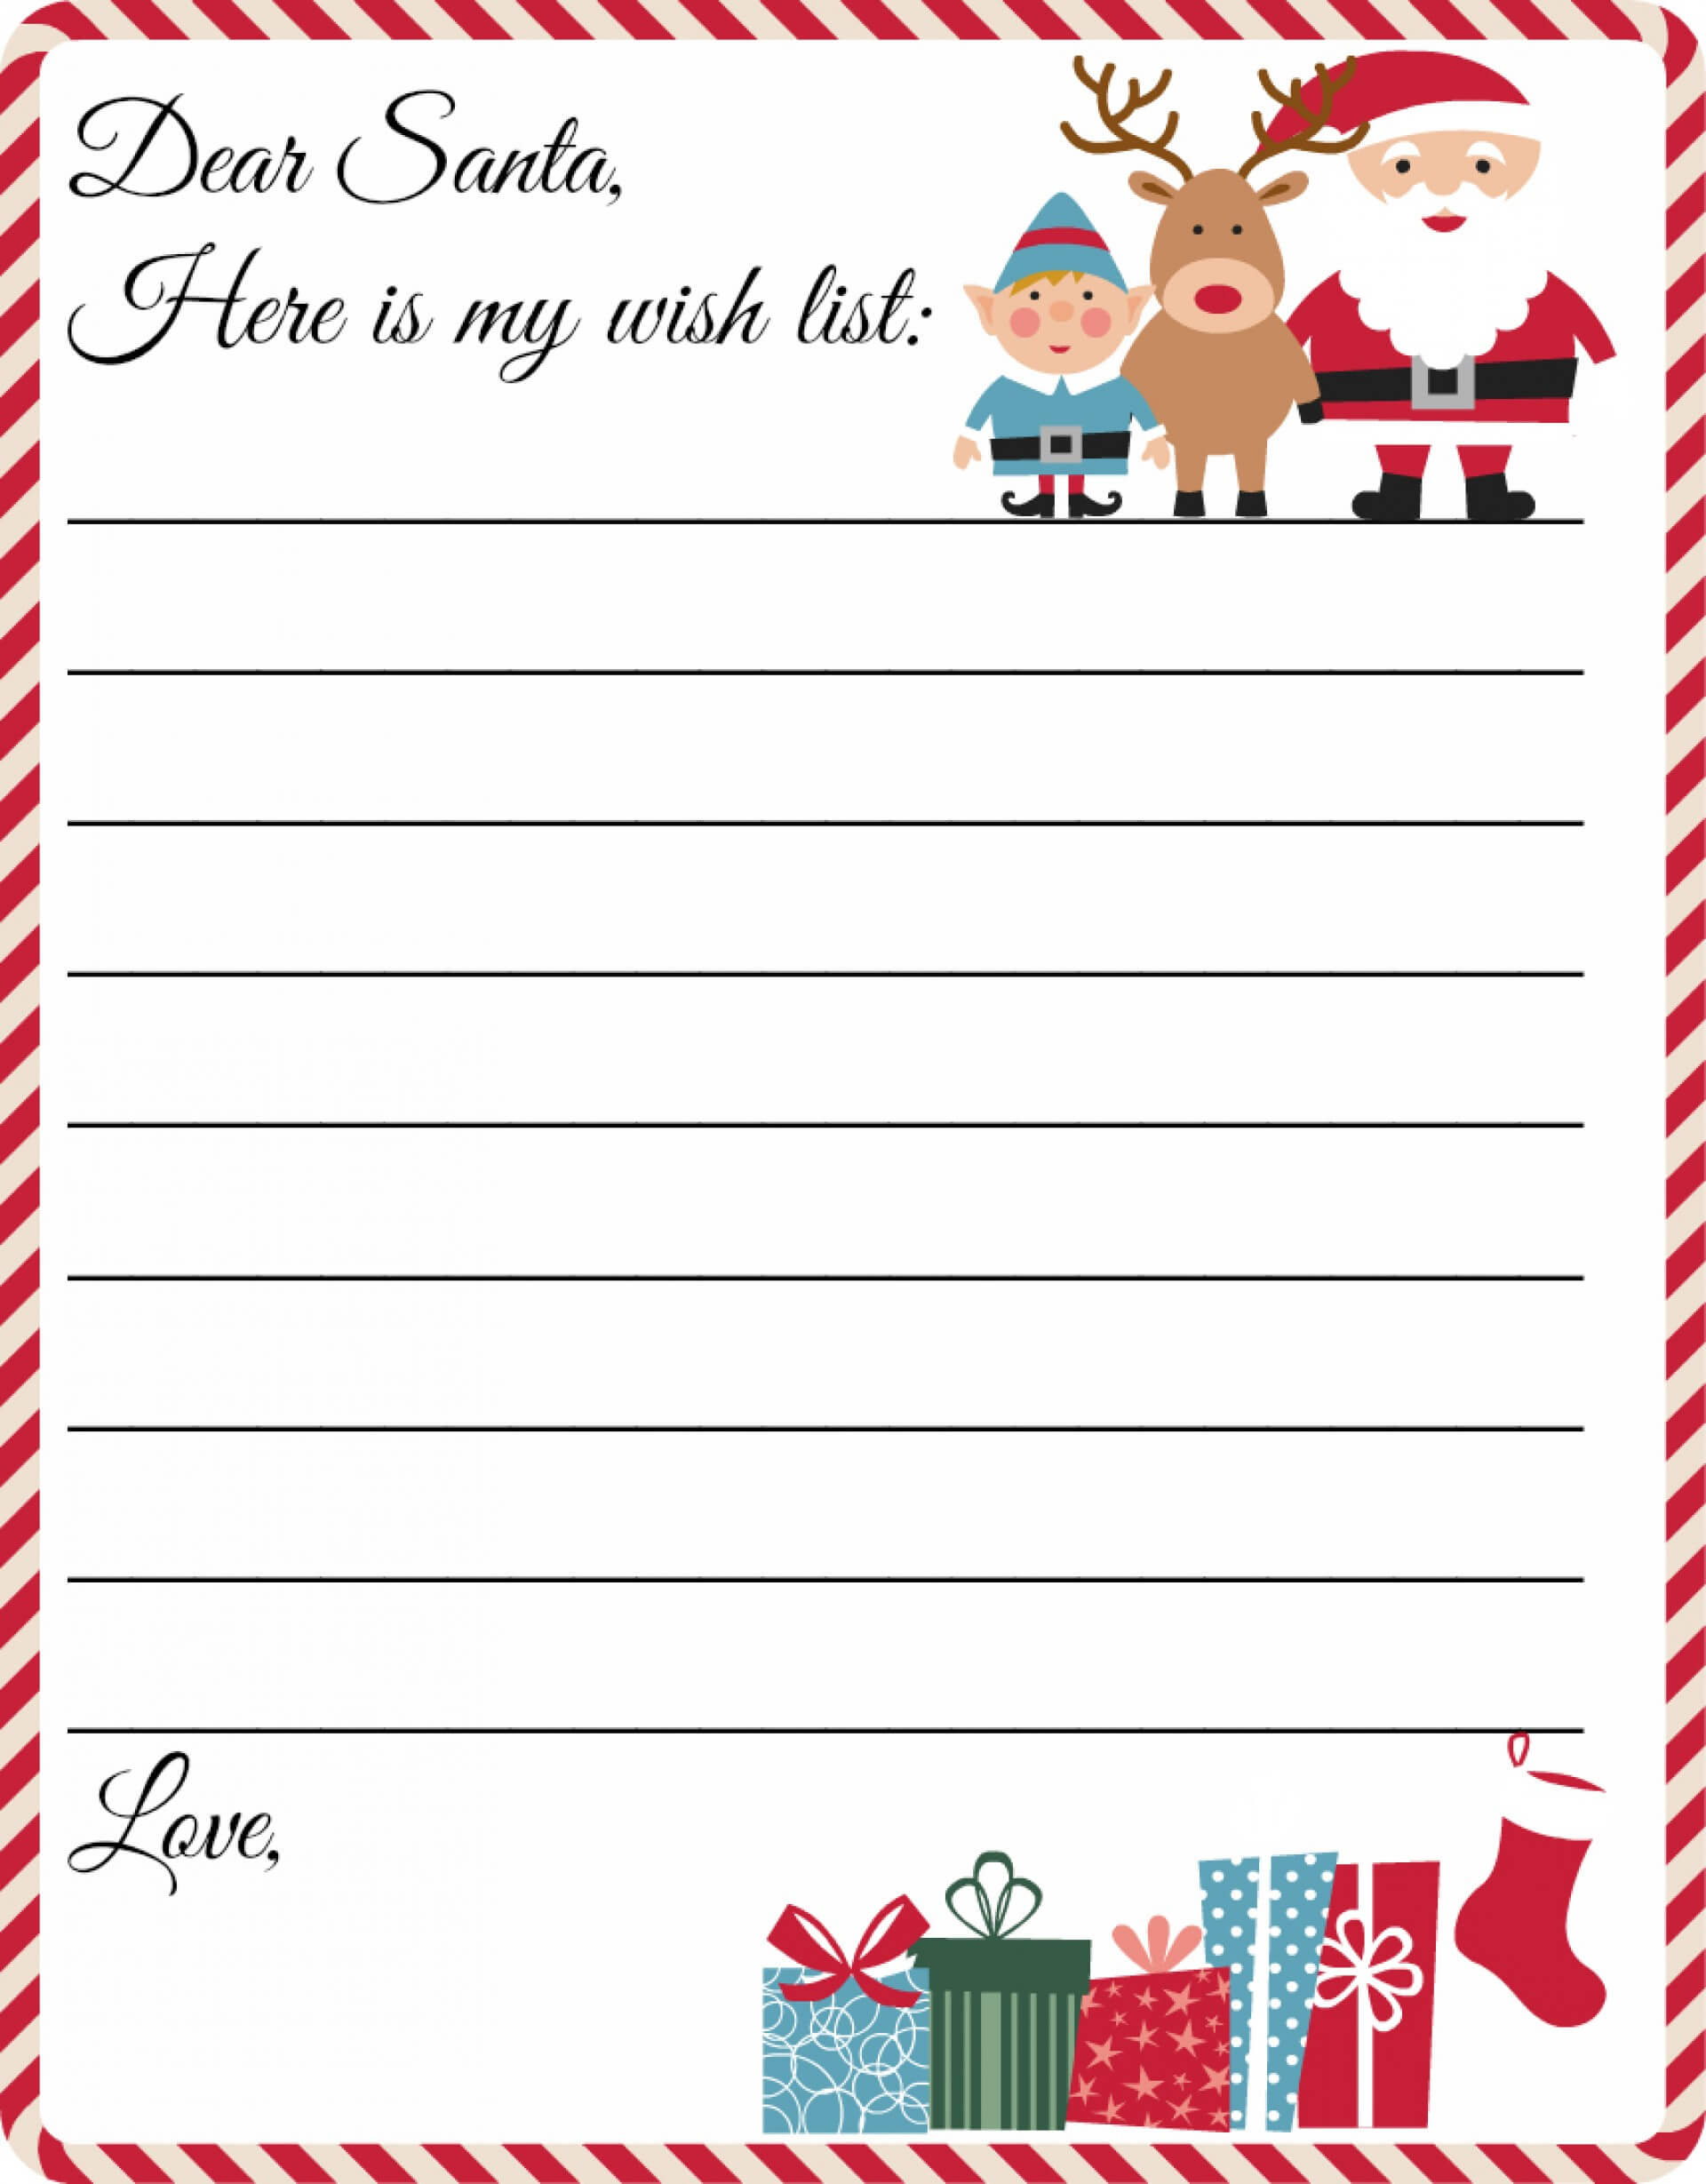 016 Ms Word Letter From Santa Template Letters Ideas To Within Letter From Santa Template Word